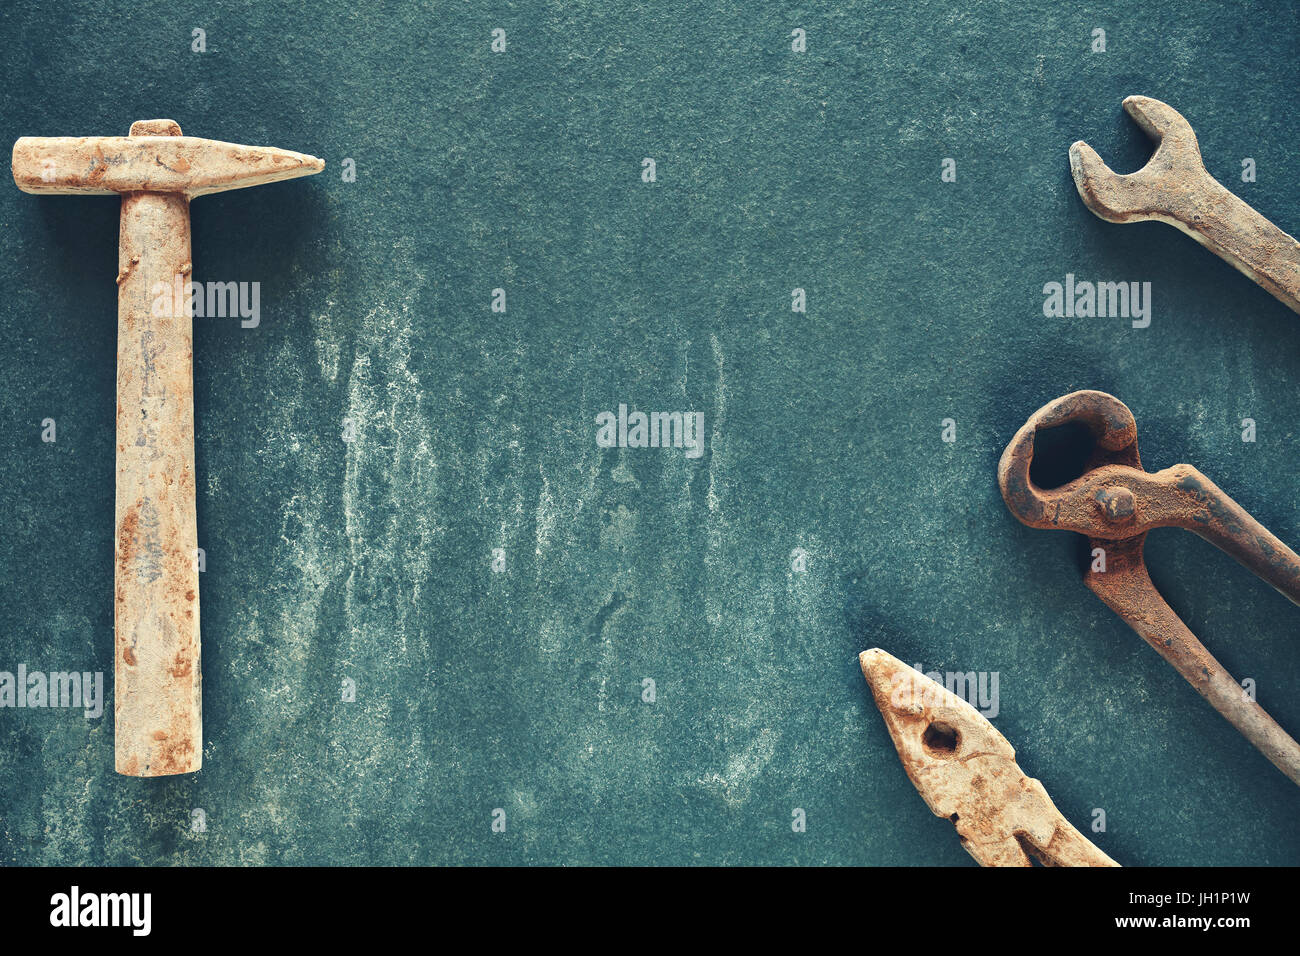 Retro stylized rusty like tools made of chocolate on a dark slate background, copy space in the middle. - Stock Image